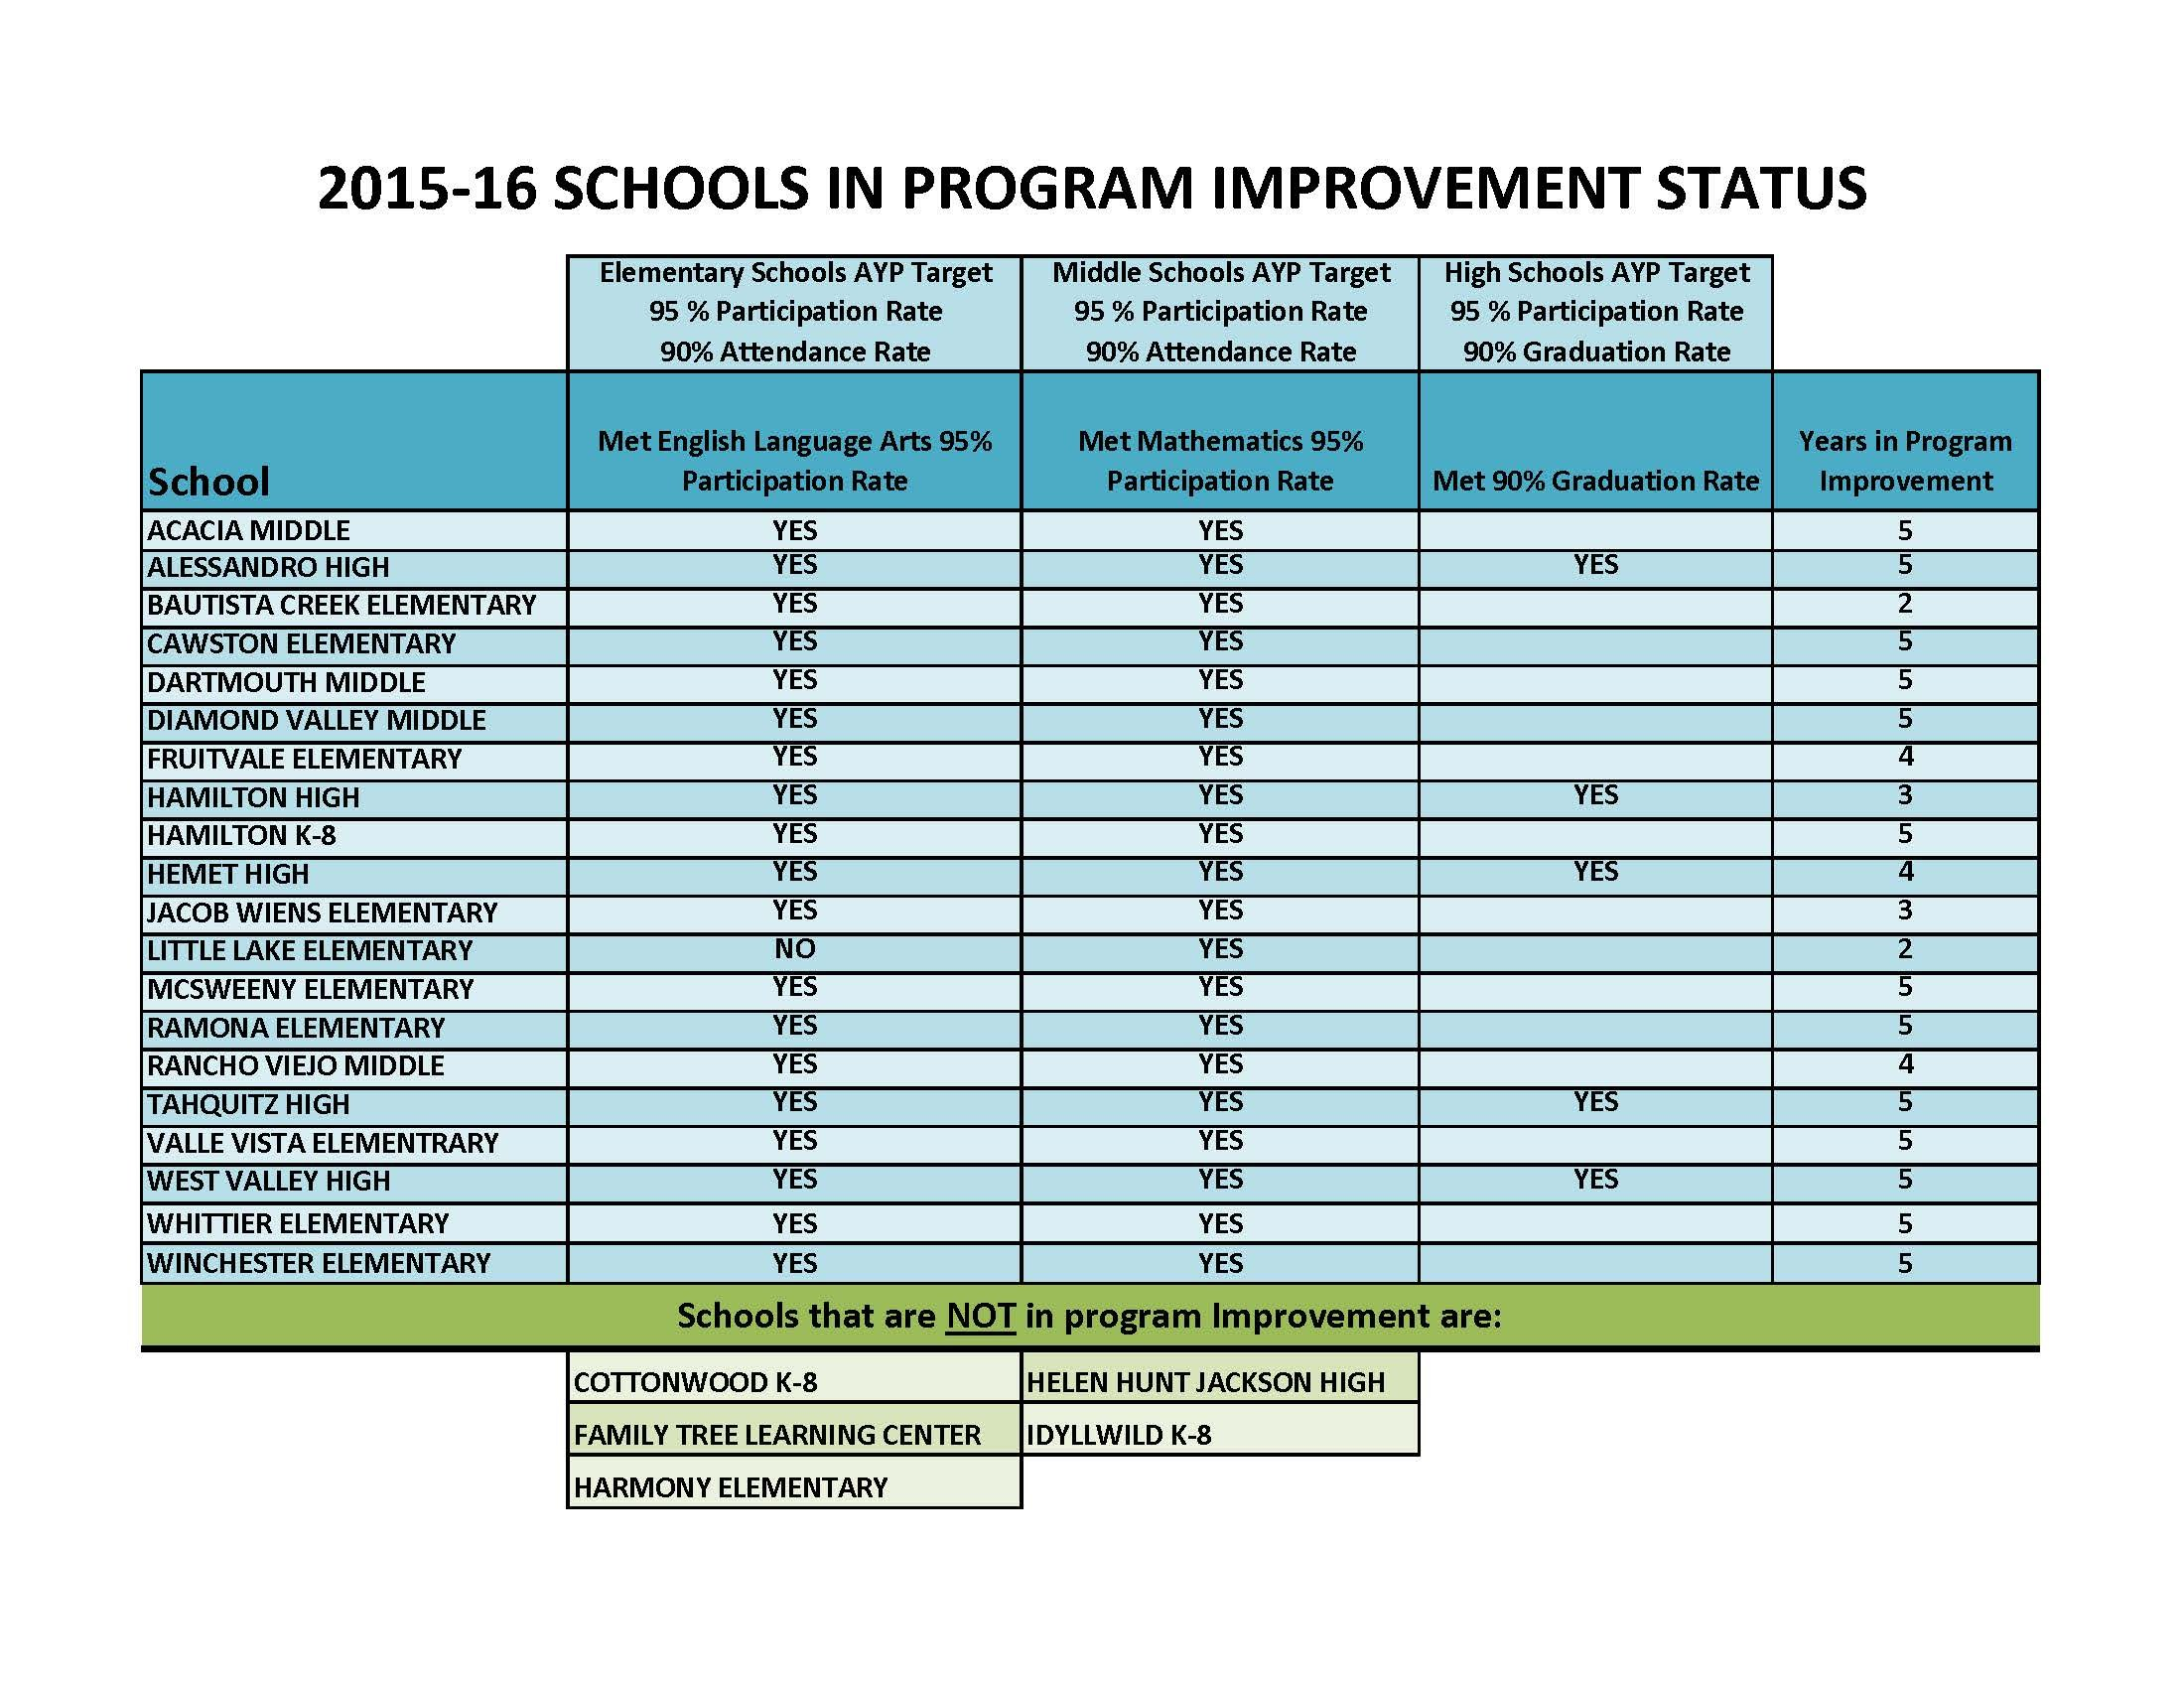 Chart of Hemet Schools' Program Improvement Status